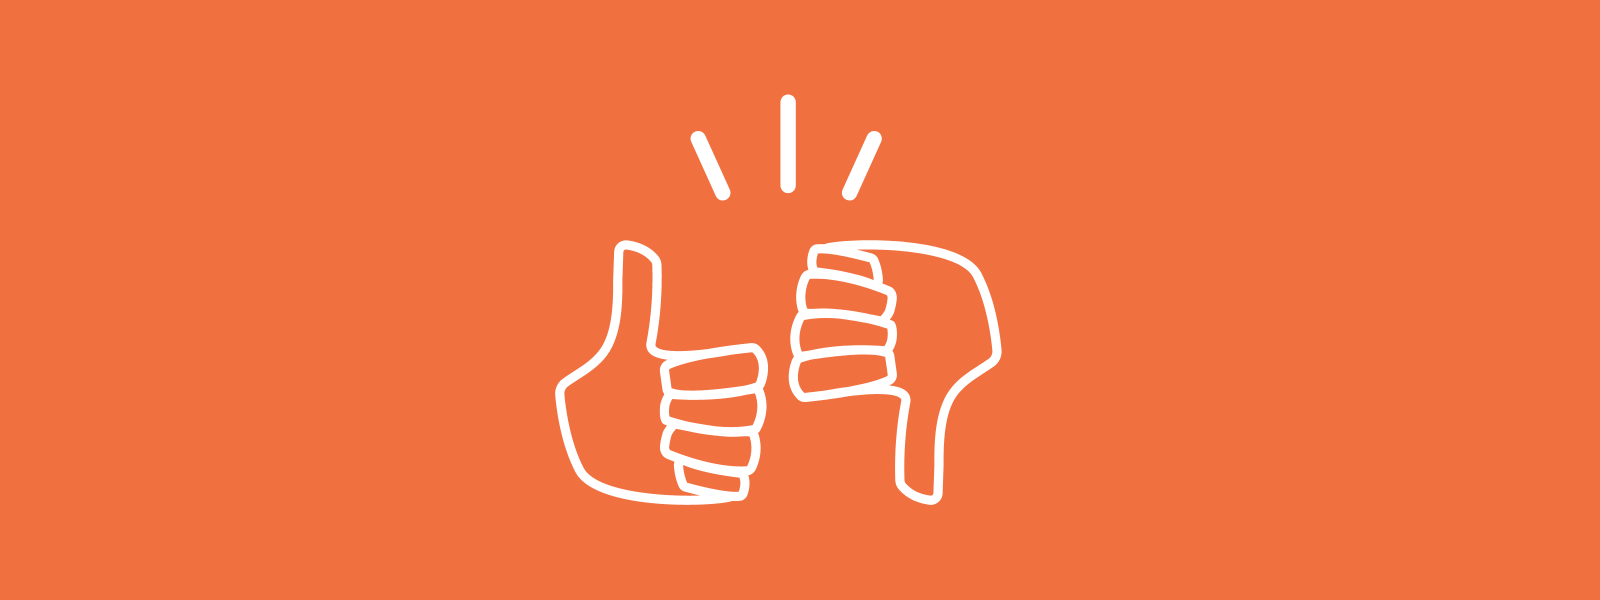 Icon background of thumbs up and thumbs down